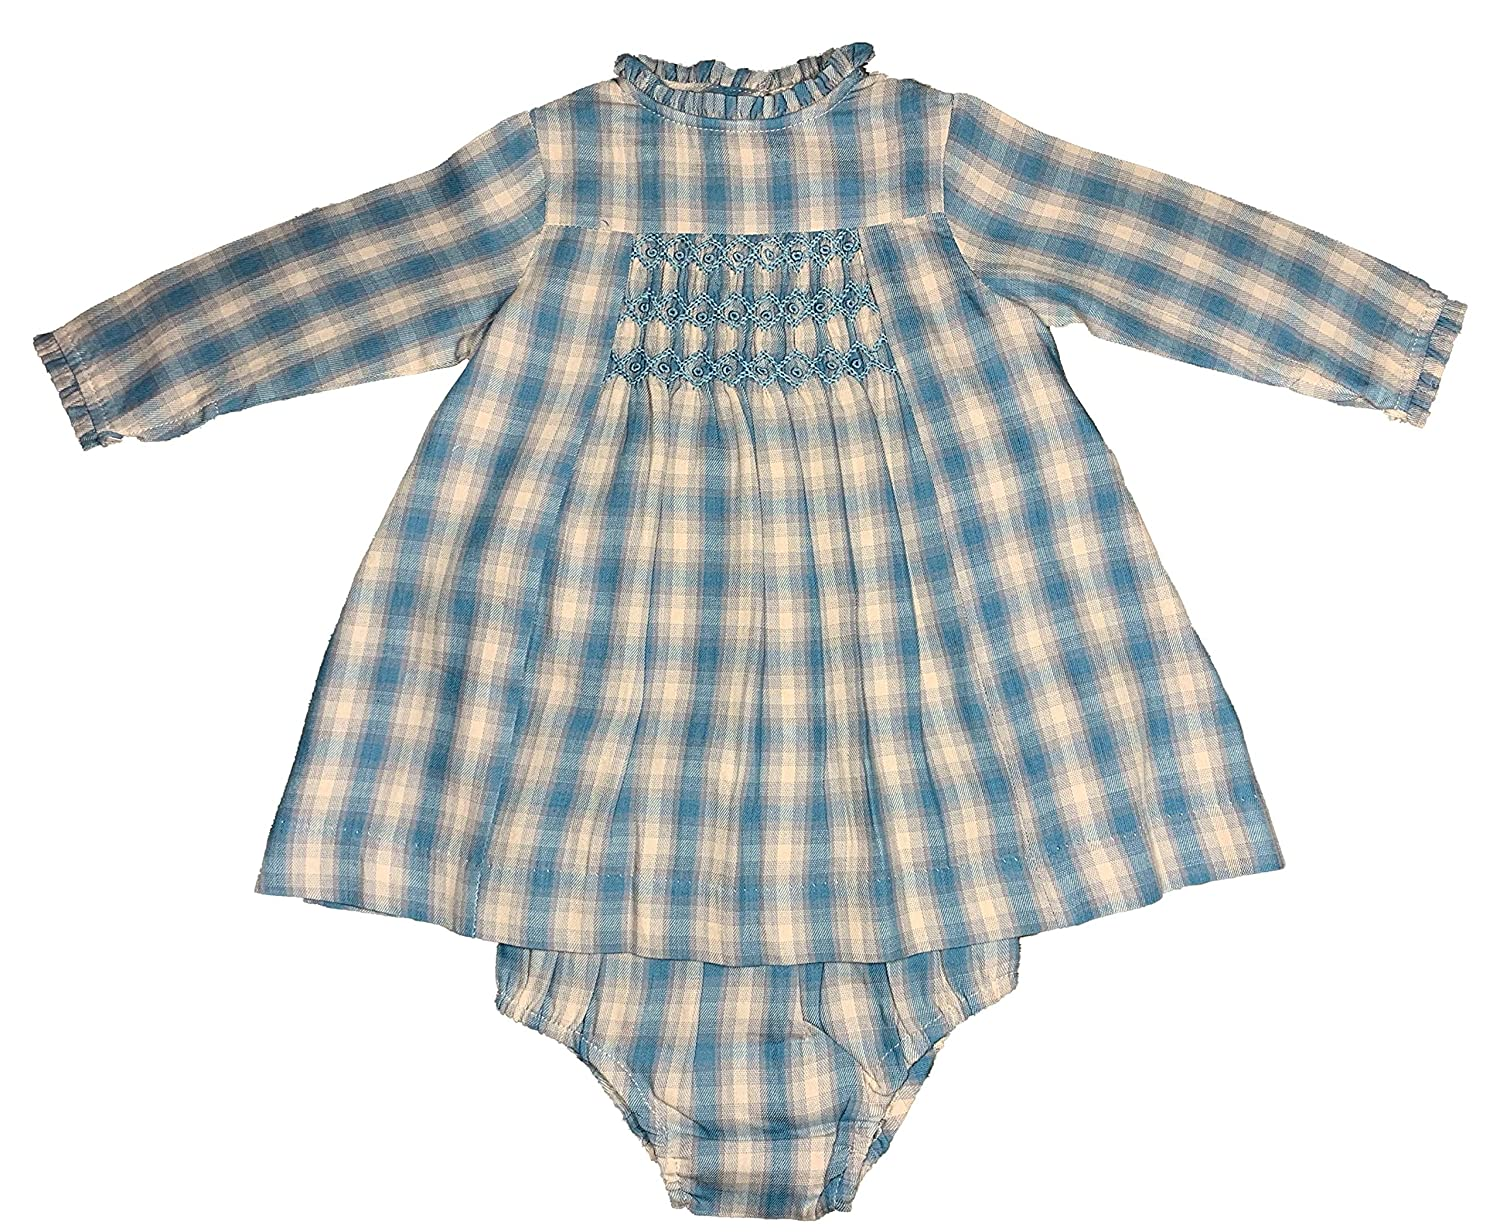 Blue//Light Gray Tartan Patricia Mendiluce Autumn-Winter Girl and Baby-Girl Hand Smoked Dress Long Sleeve